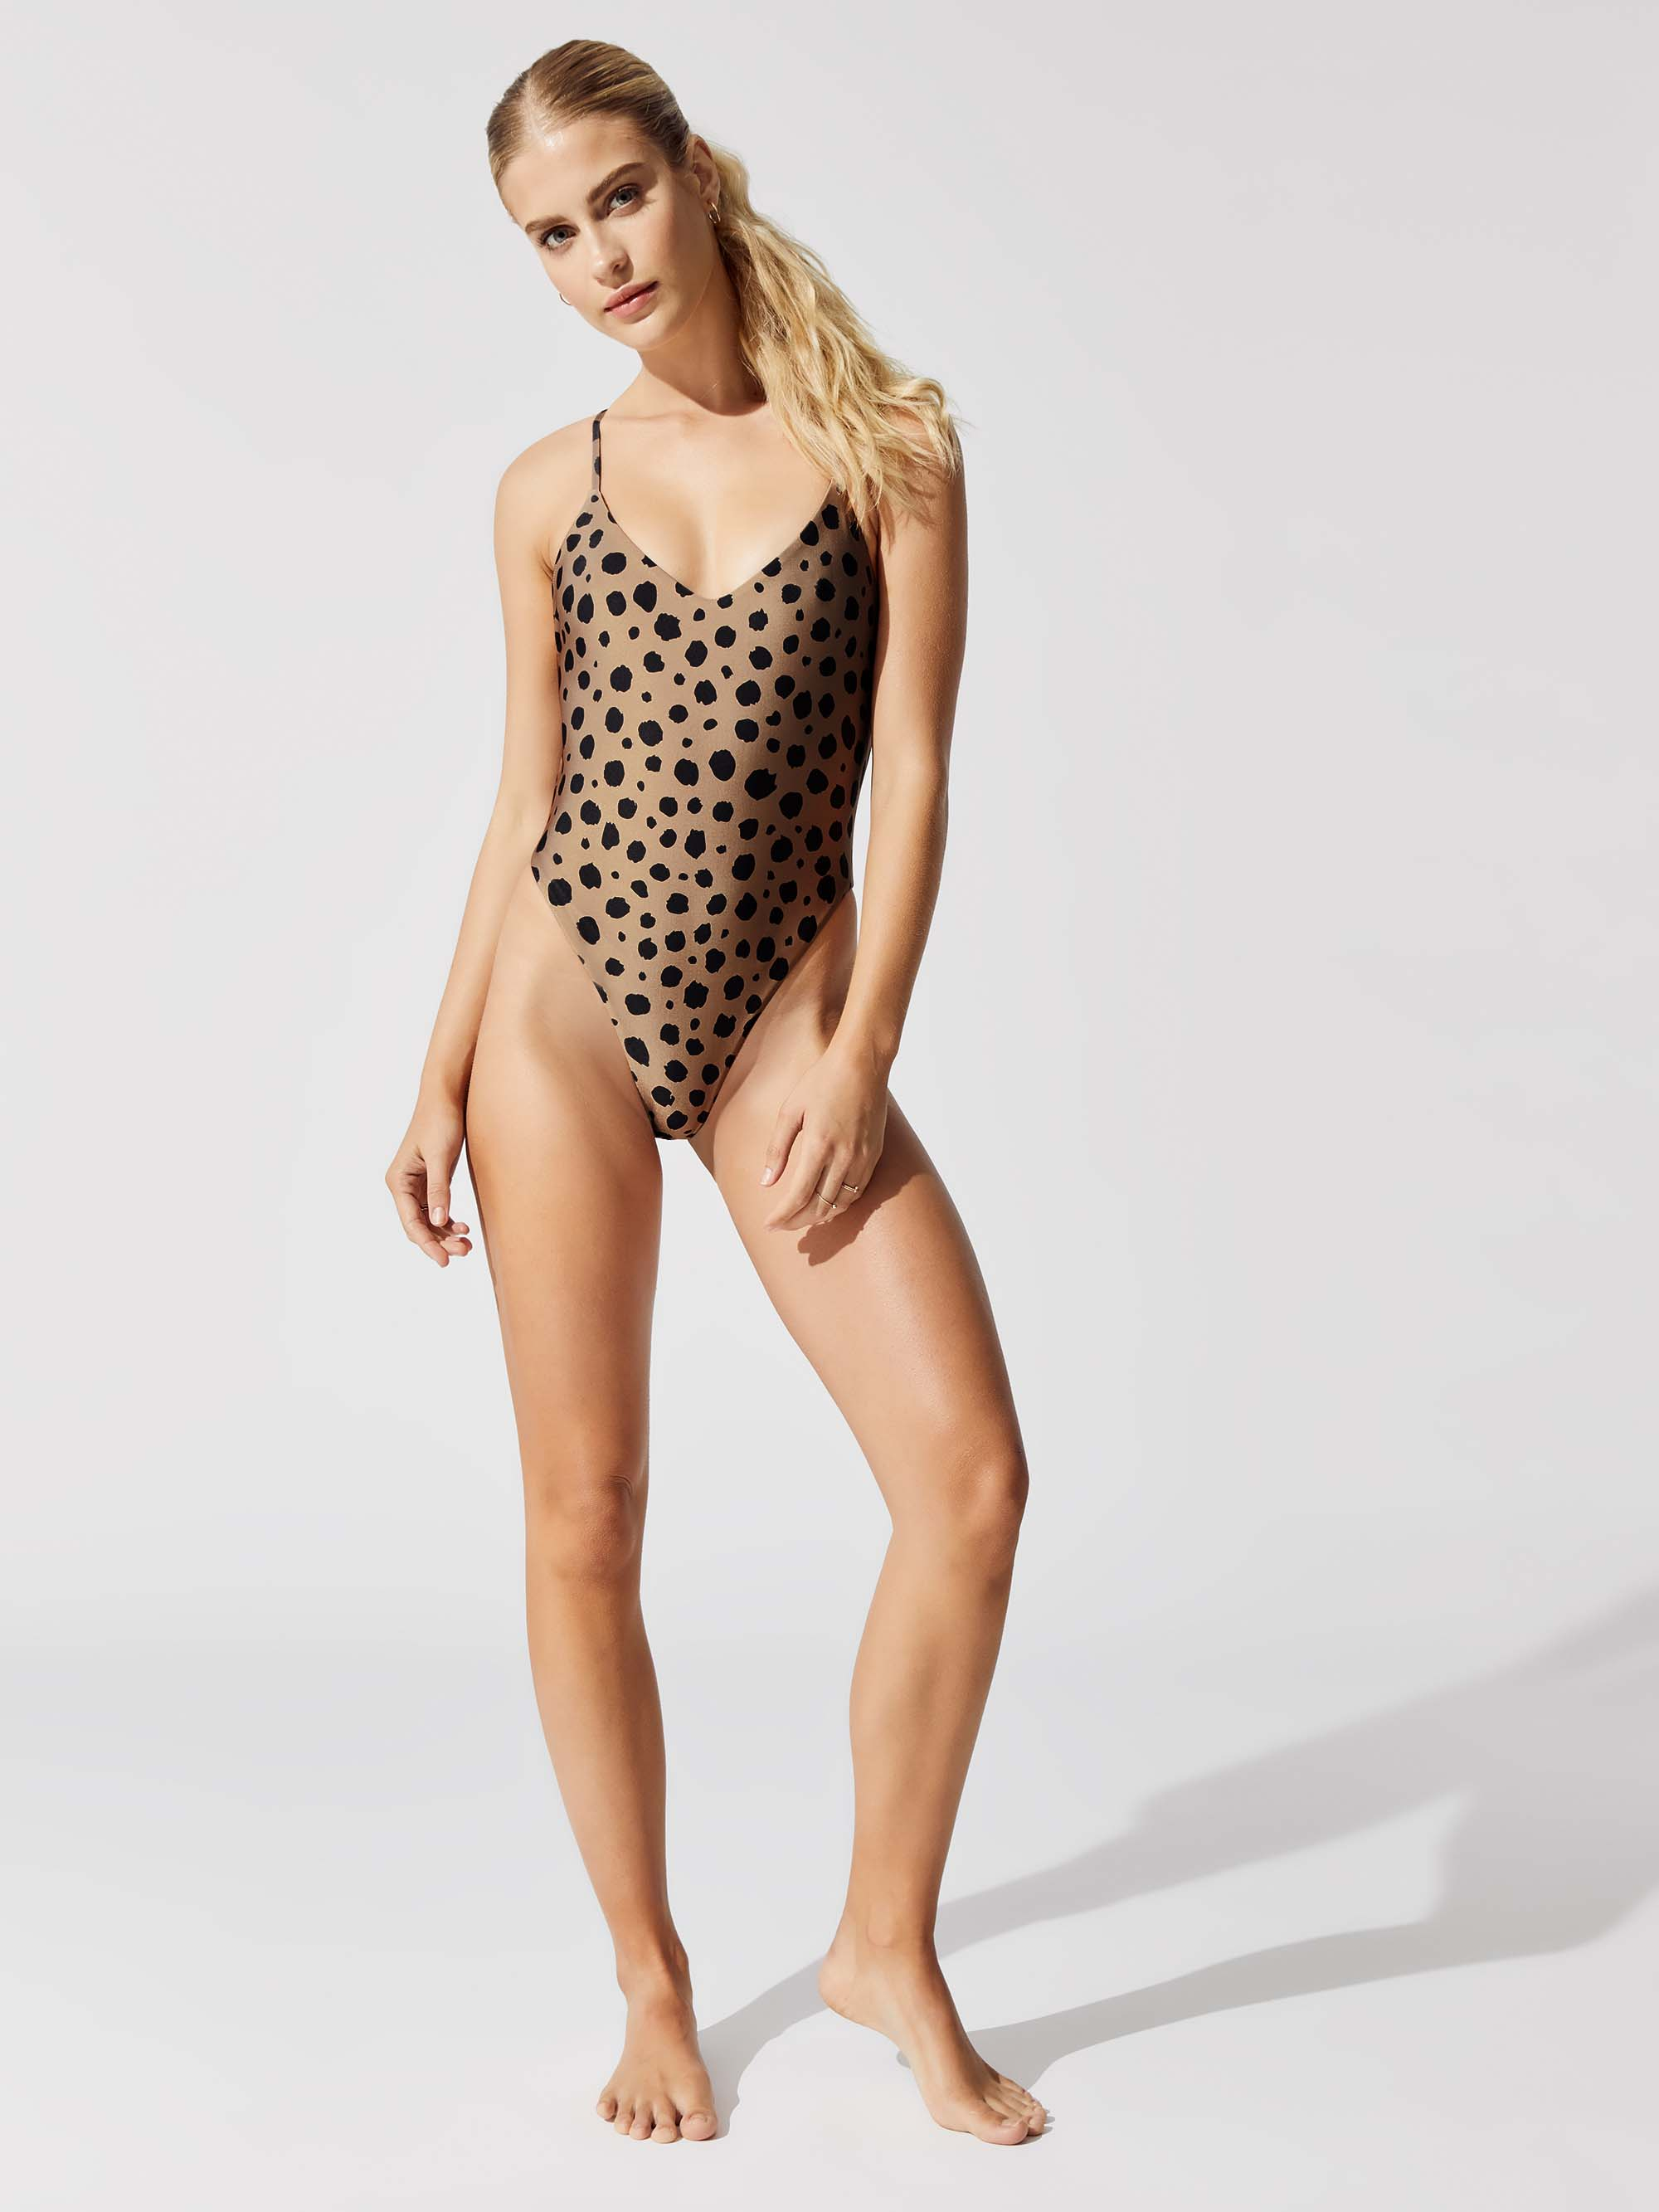 LNA-CLASSIC-ONE-PIECE-CHEETAH-0017-A.jpg